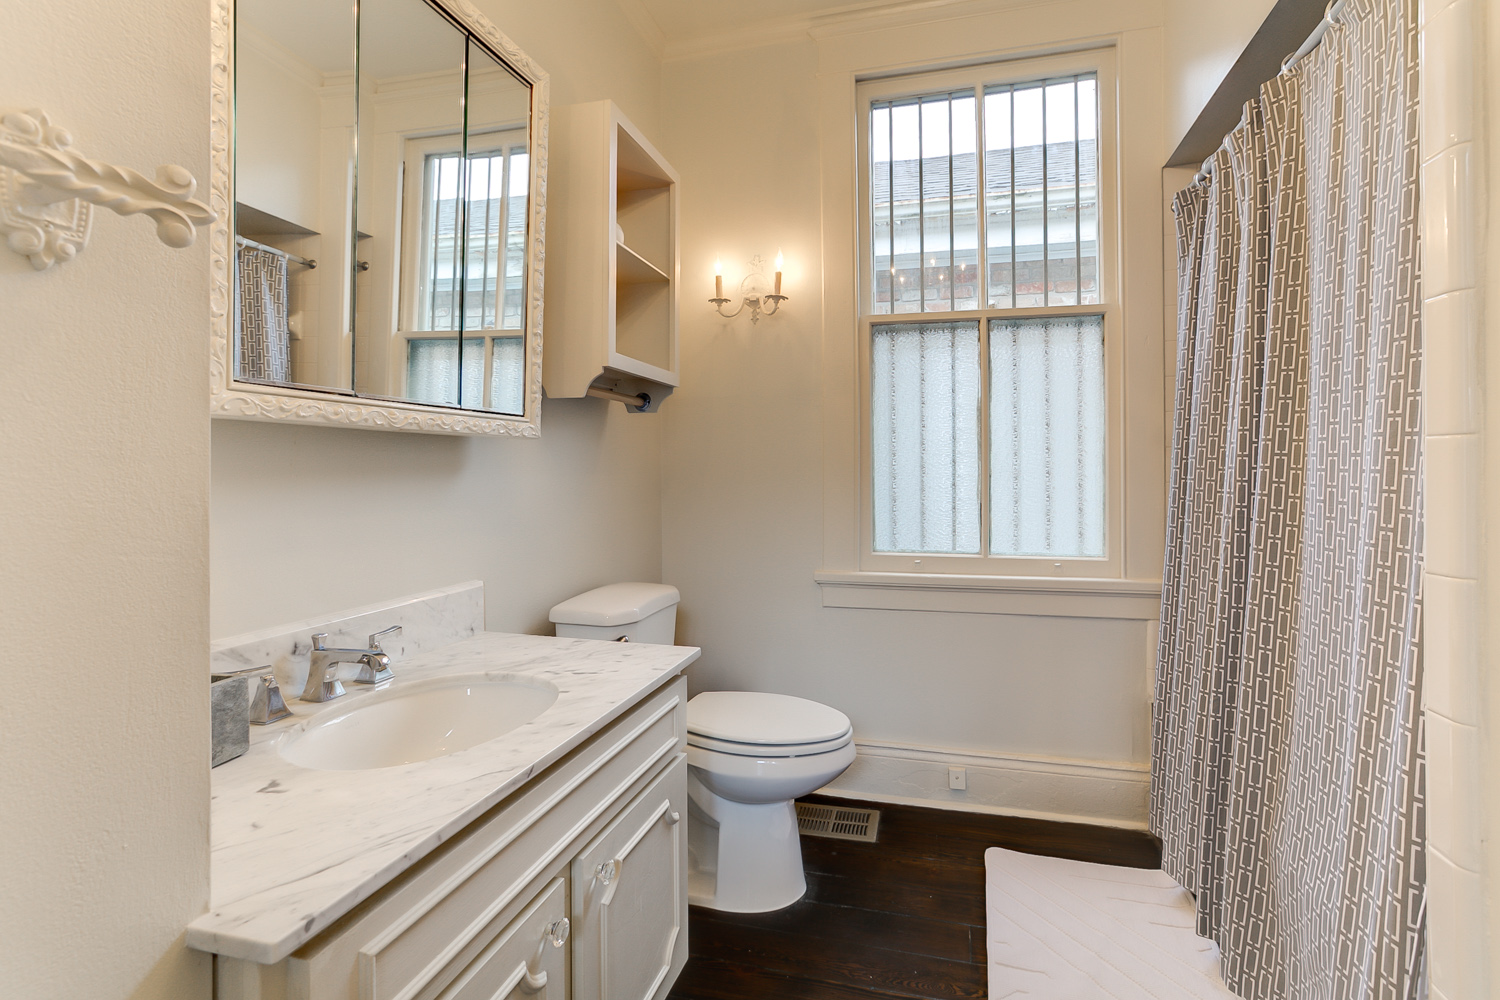 Uptown, House, 2 beds, 1.5 baths, $3300 per month New Orleans Rental - devie image_8